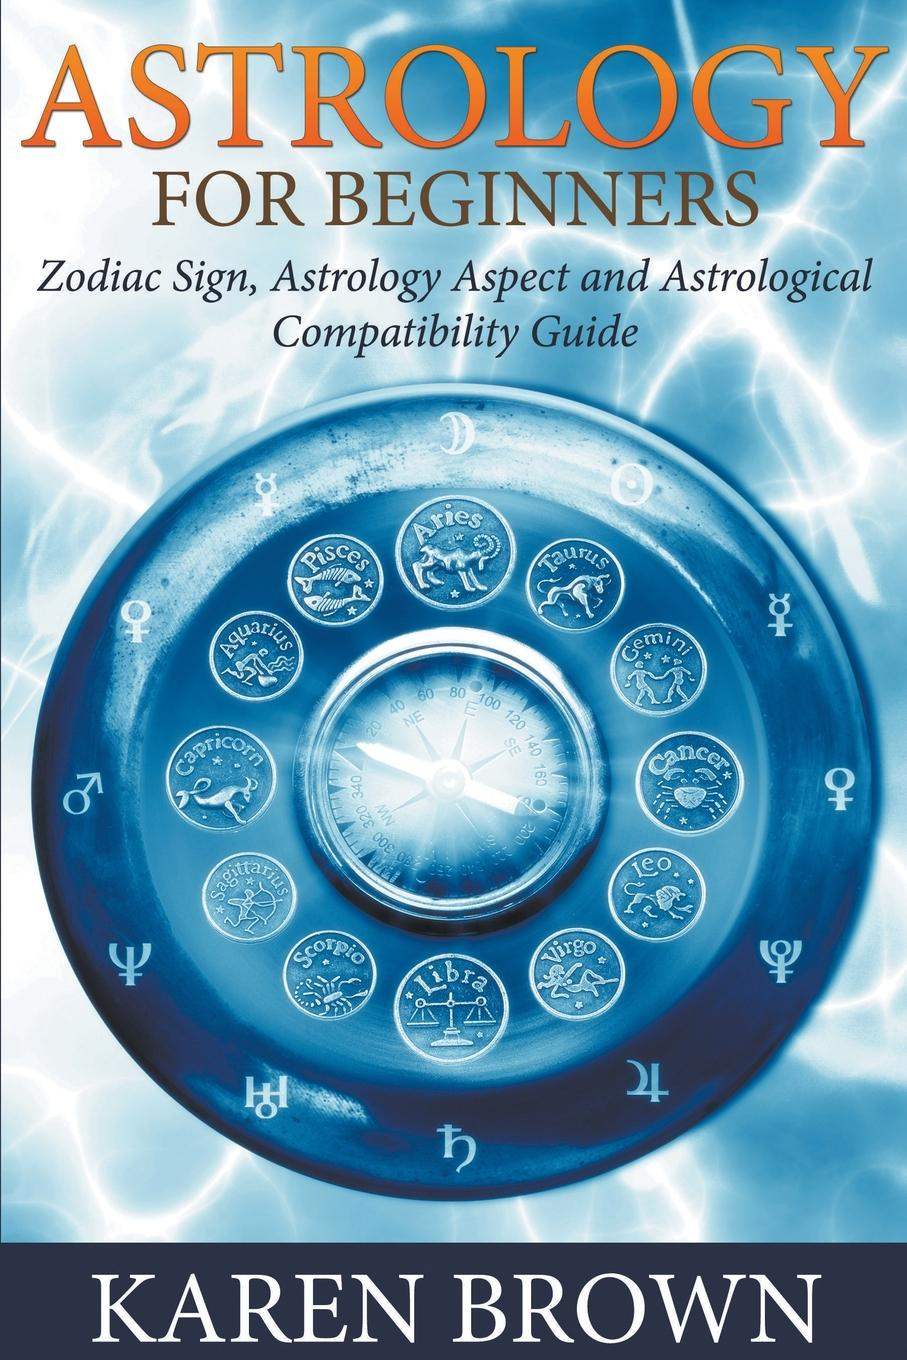 Karen Brown Astrology For Beginners. Zodiac Sign, Astrology Aspect and Astrological Compatibility Guide купить недорого в Москве